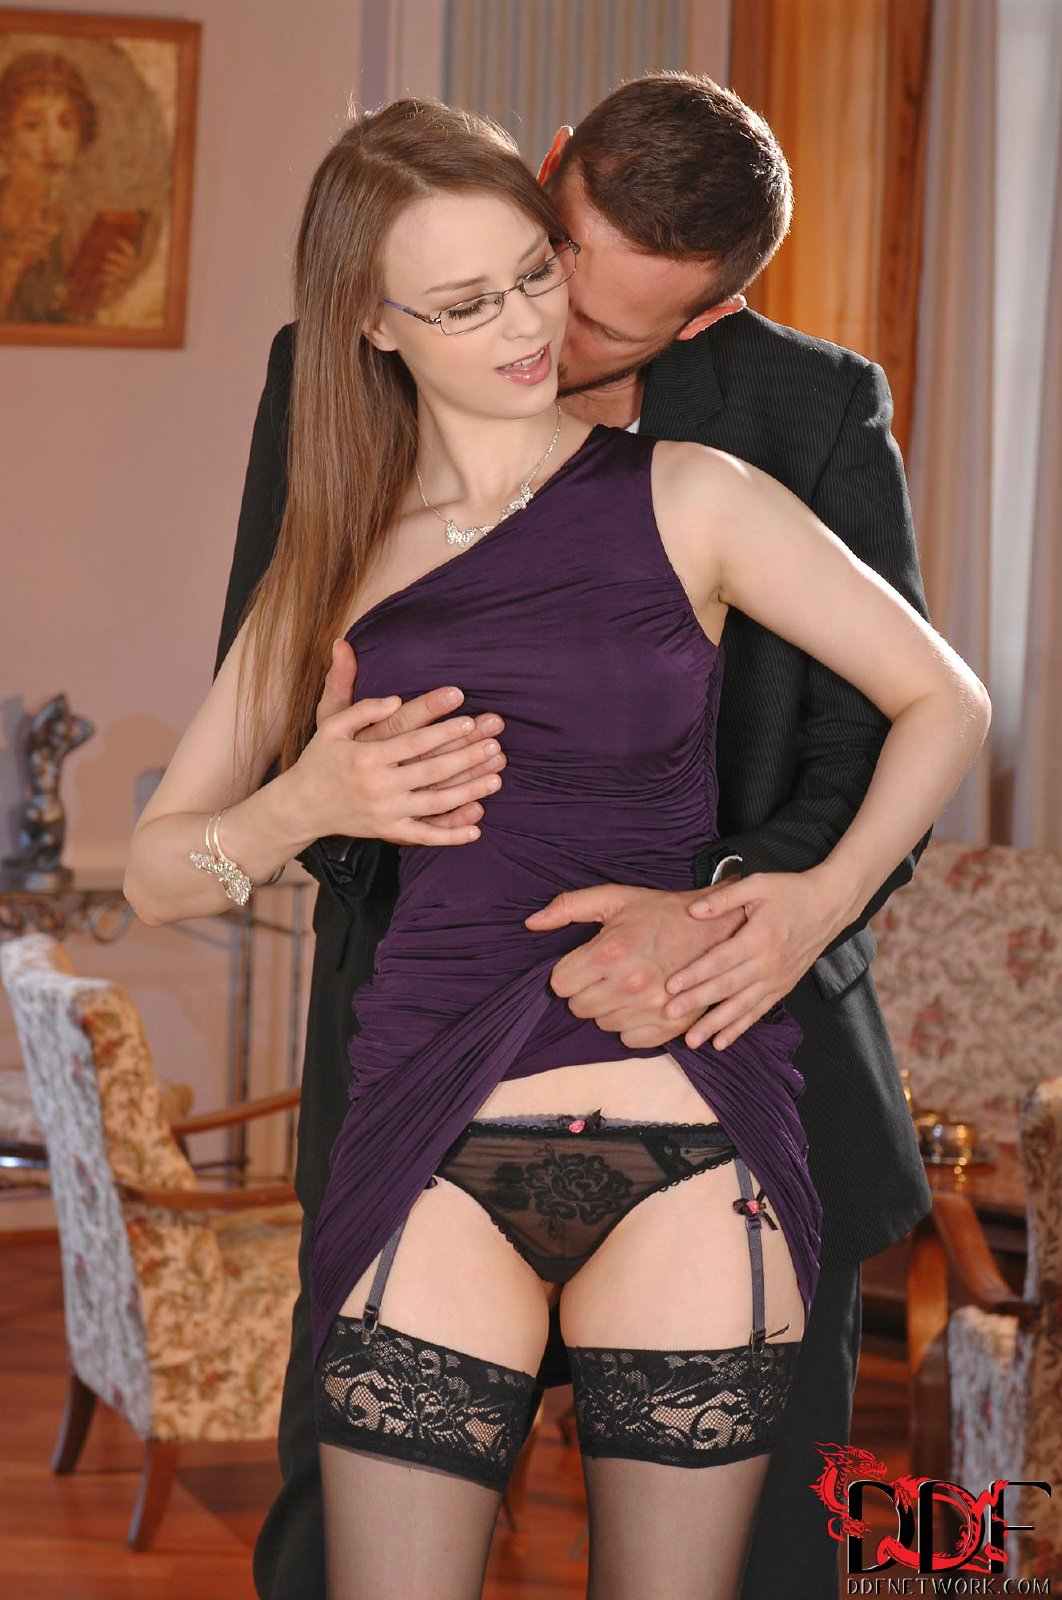 stockings as pussy Beata Undine in black stockings takes huge cock in her pussy.